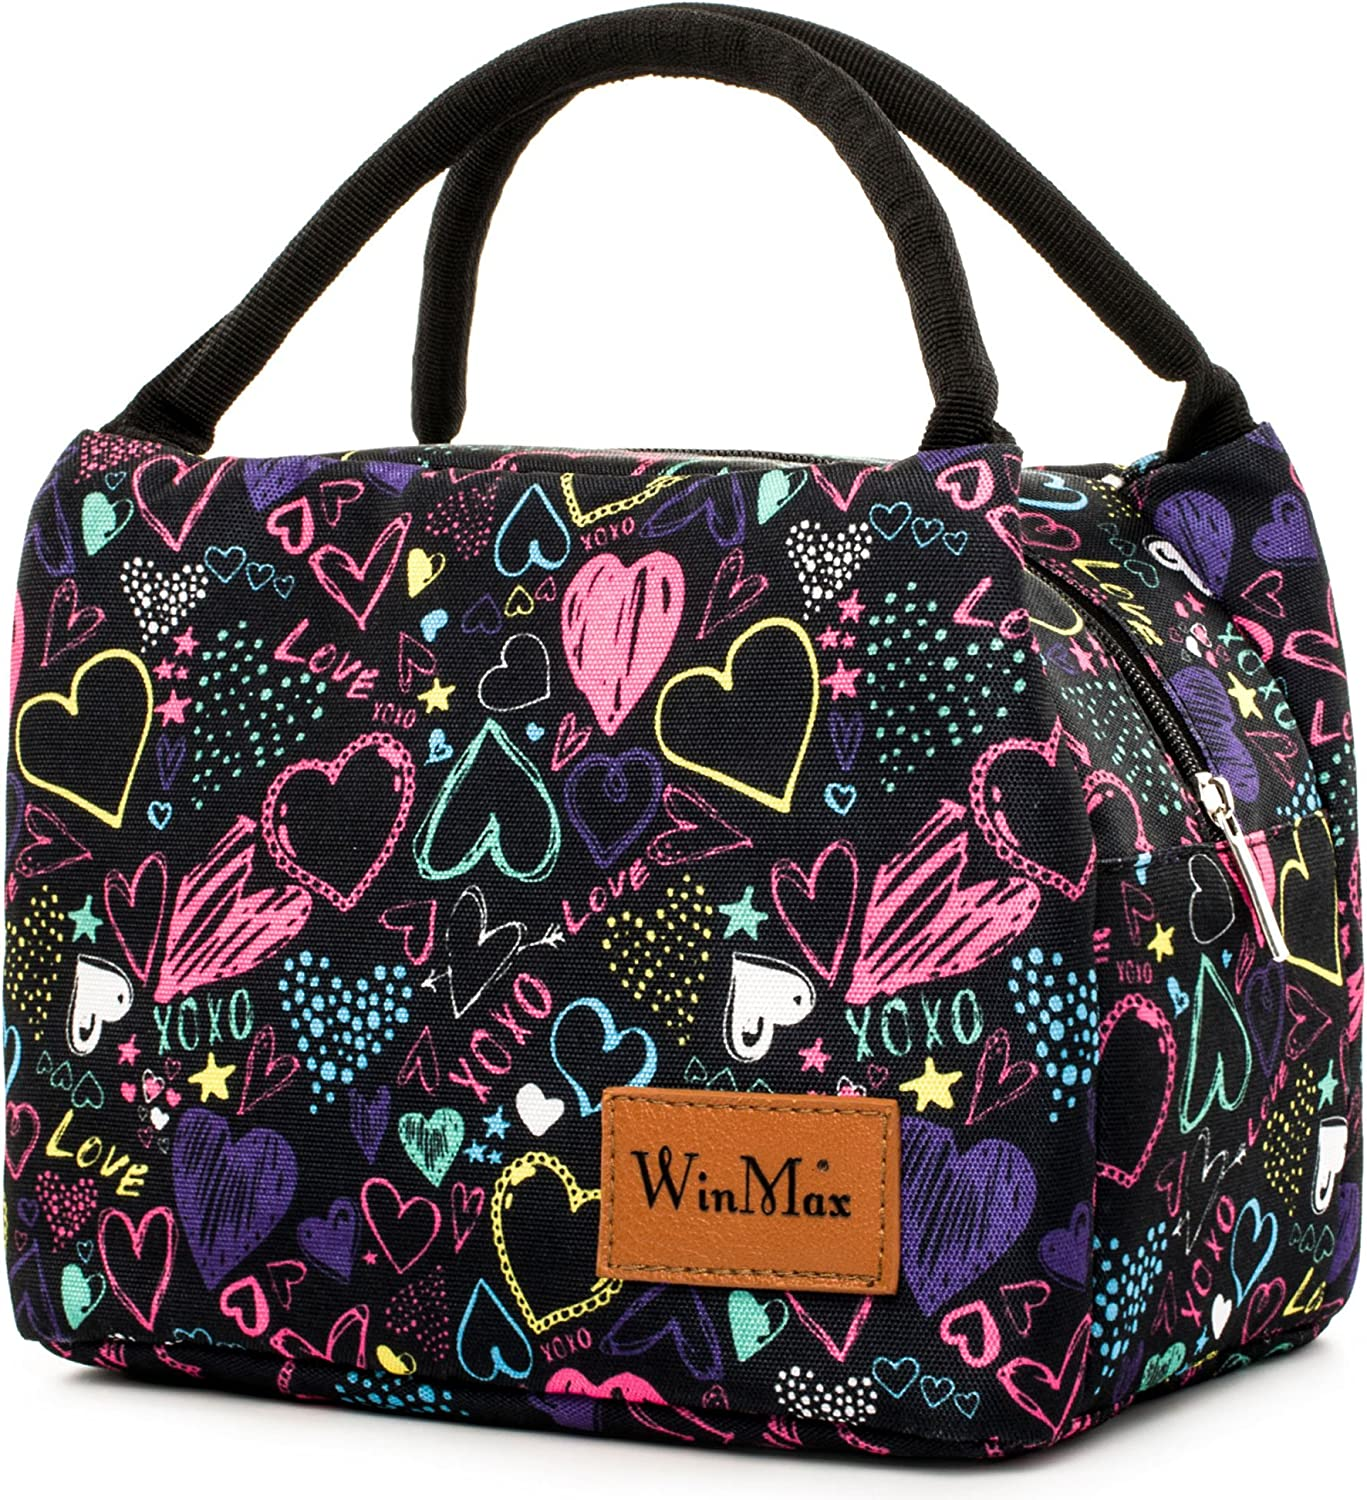 Lunch Bag Cute Lunch Box for Women Insulated Lunch Tote Bag Travel/Work/To-Go Food Containers Waterproof and No Leak